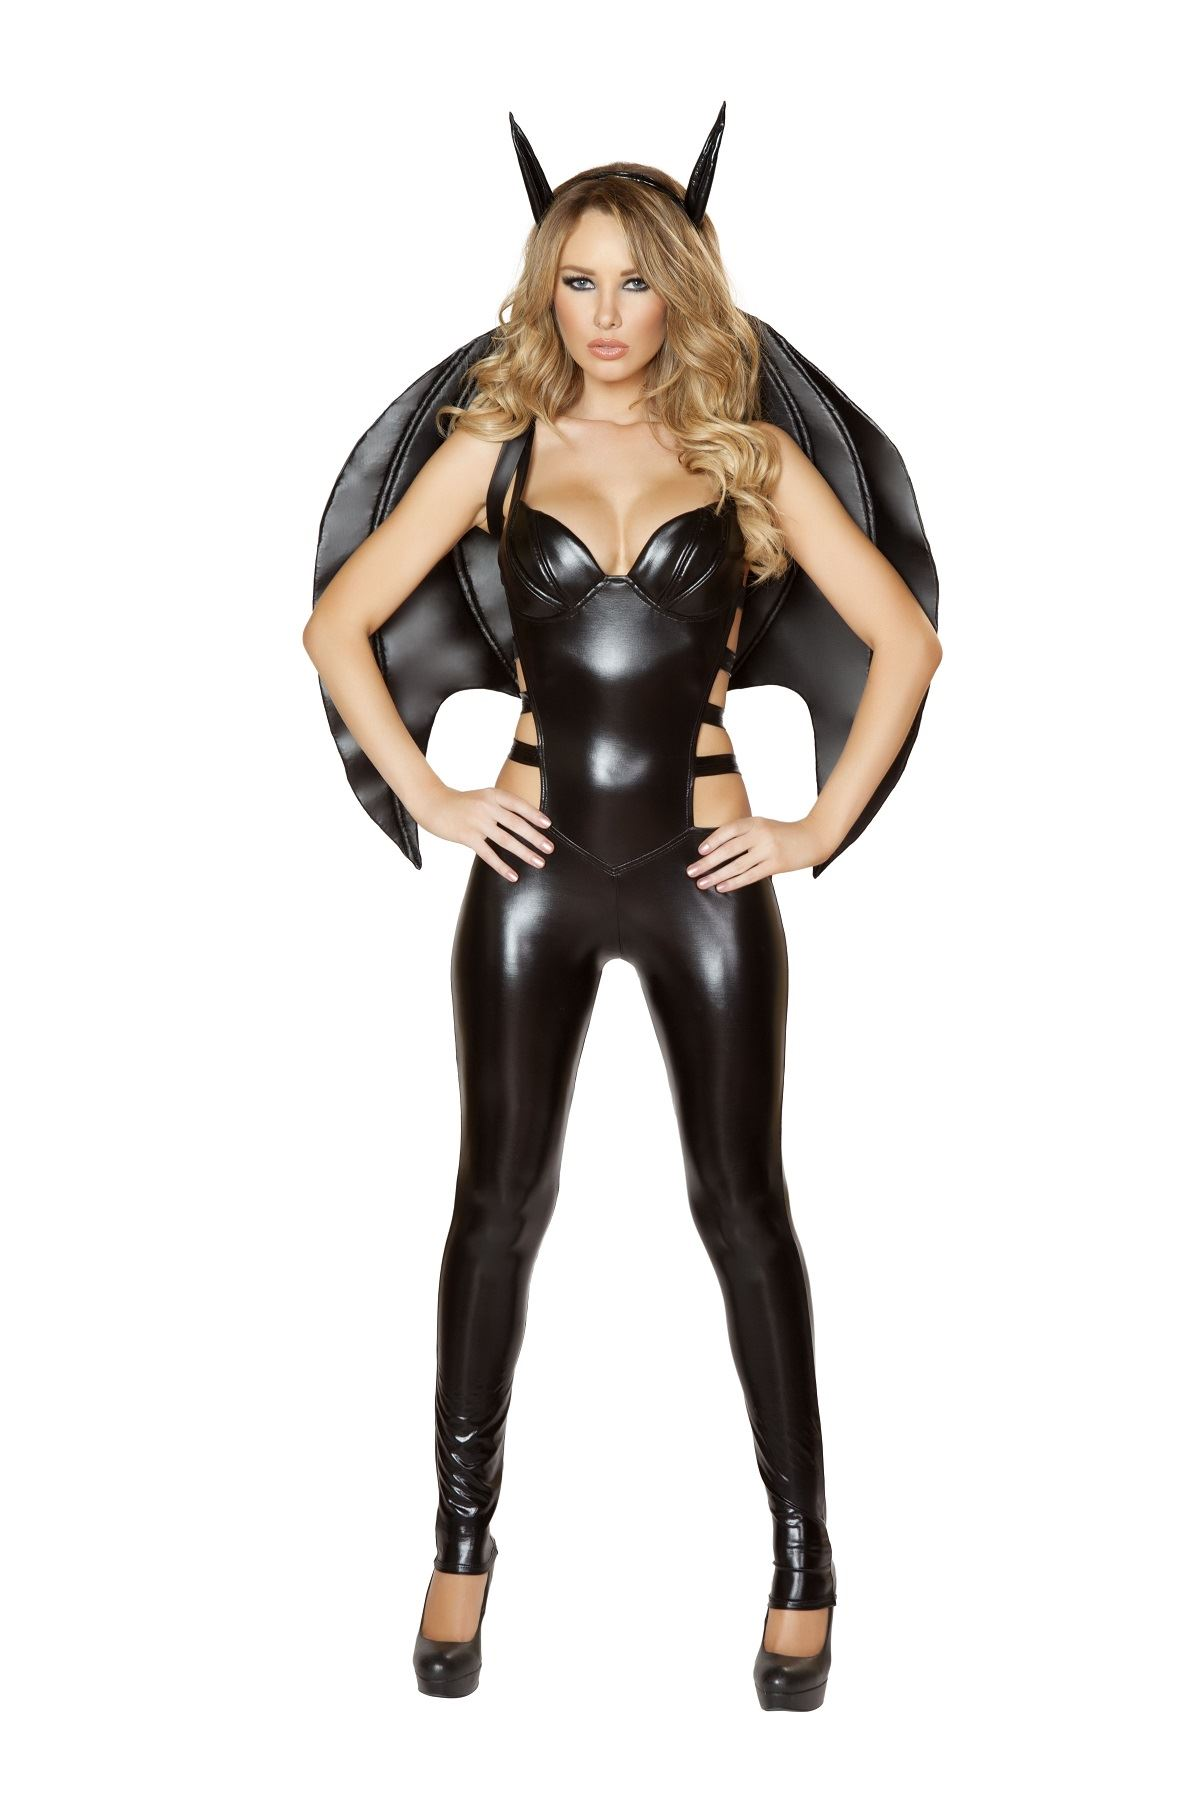 Adult Bat Woman Sexy Superhero Costume ...  sc 1 st  The Costume Land & Adult Bat Woman Sexy Superhero Costume